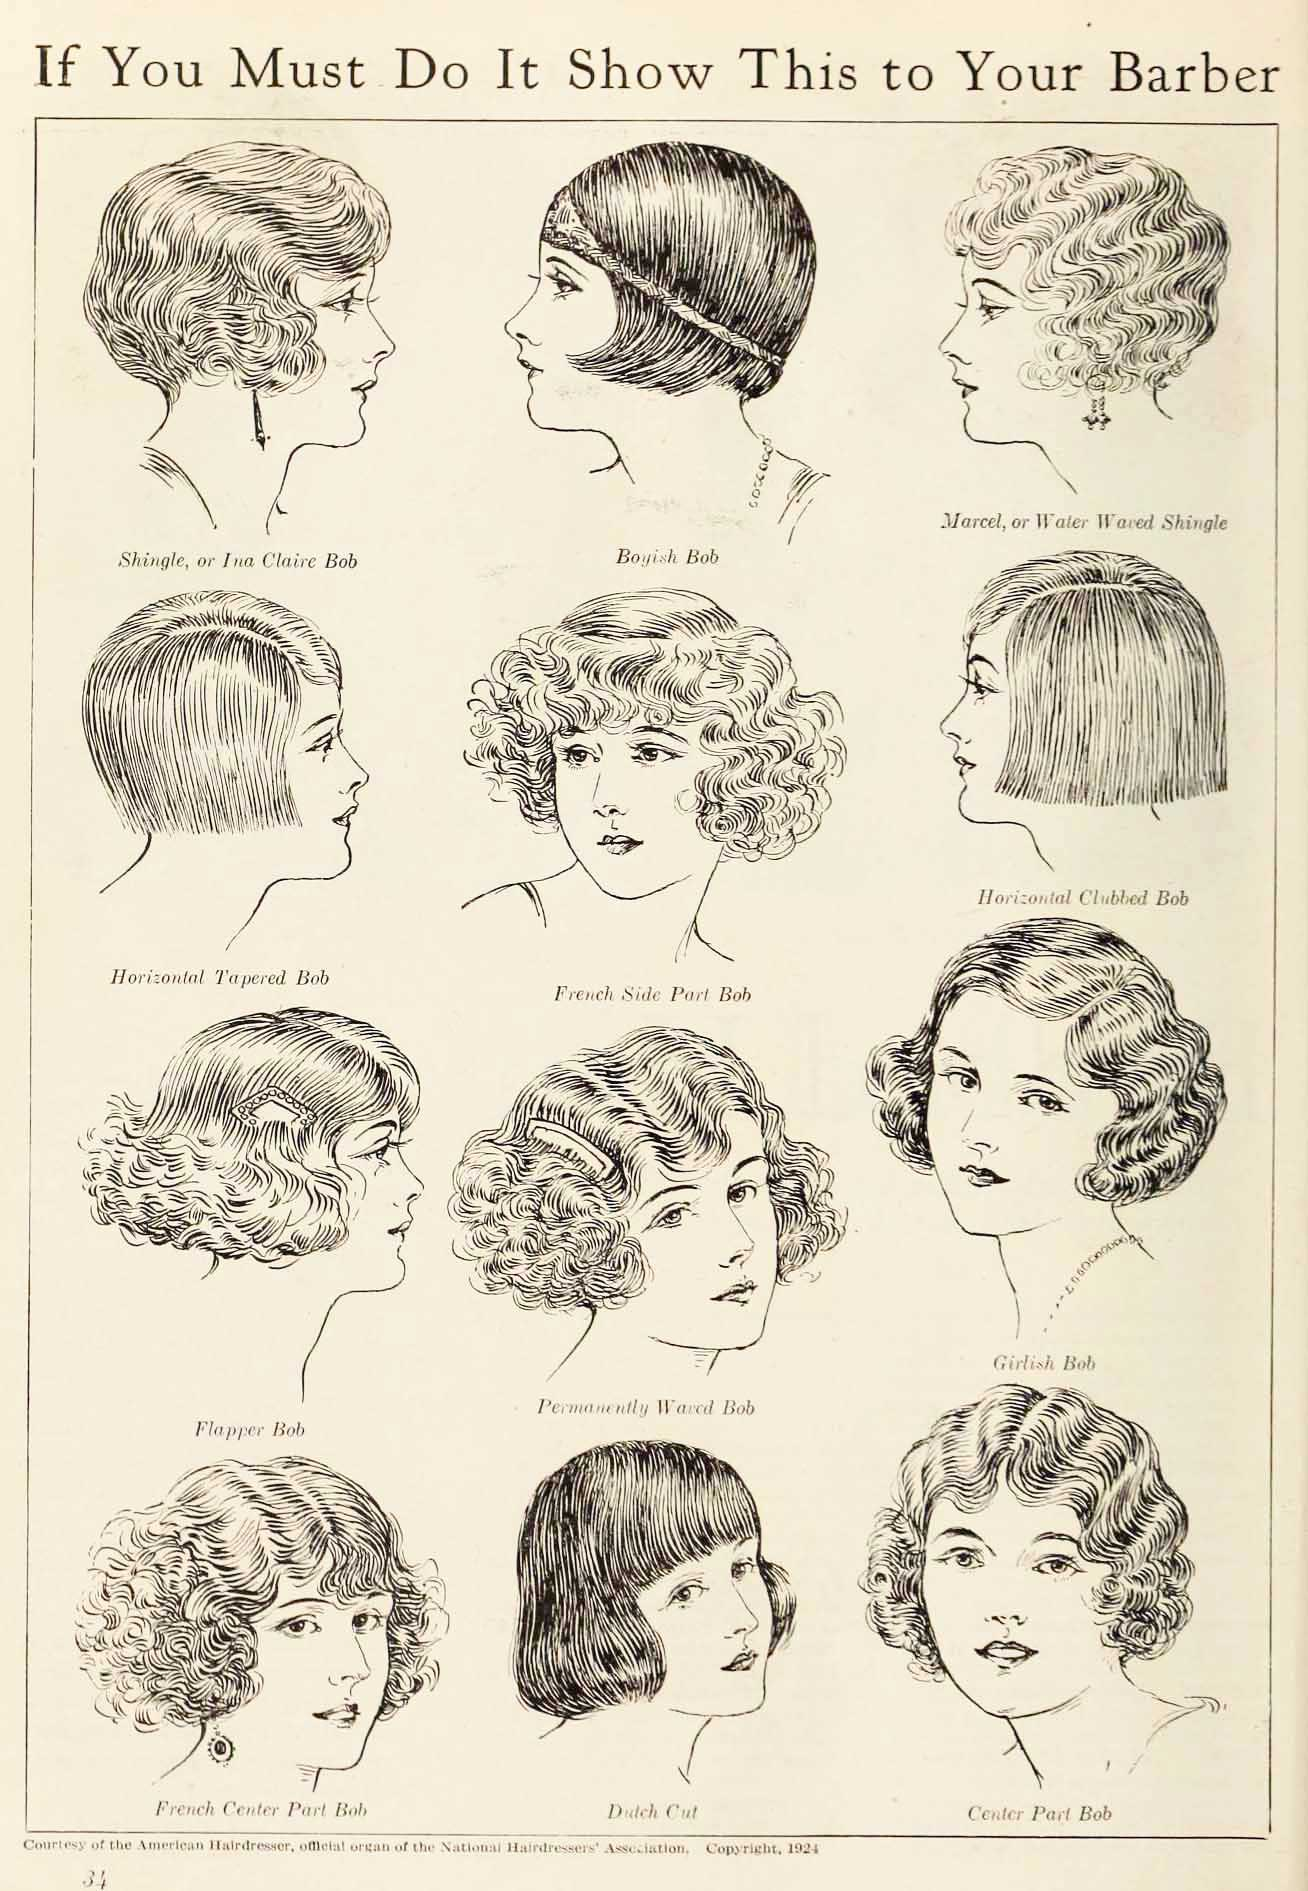 12 classic short bob hair cuts from 1924